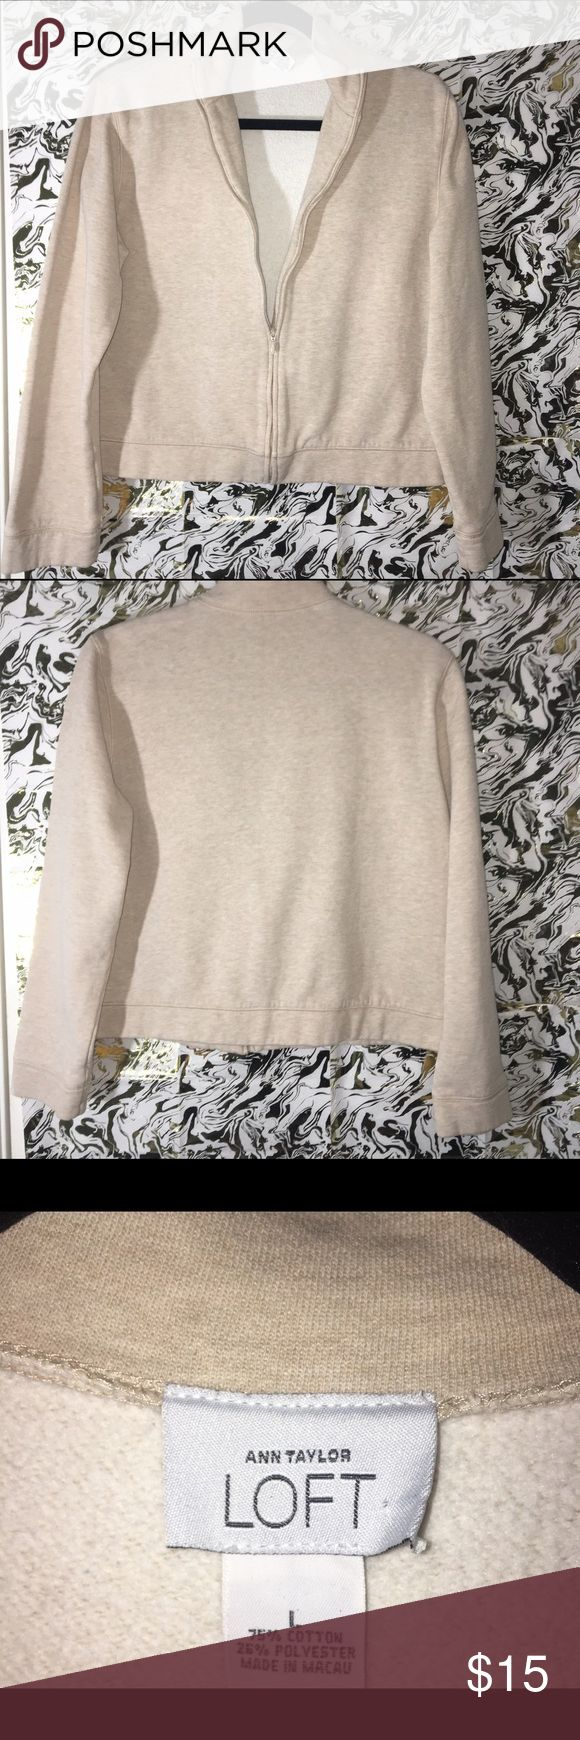 Ann Taylor Loft Zip-up Sweatshirt Cream zip-up sweatshirt with sliver colored hardware. Fabrication- 75% Cotton 25% Polyester  Condition- Great 👍 Ann Taylor LOFT Tops Sweatshirts & Hoodies